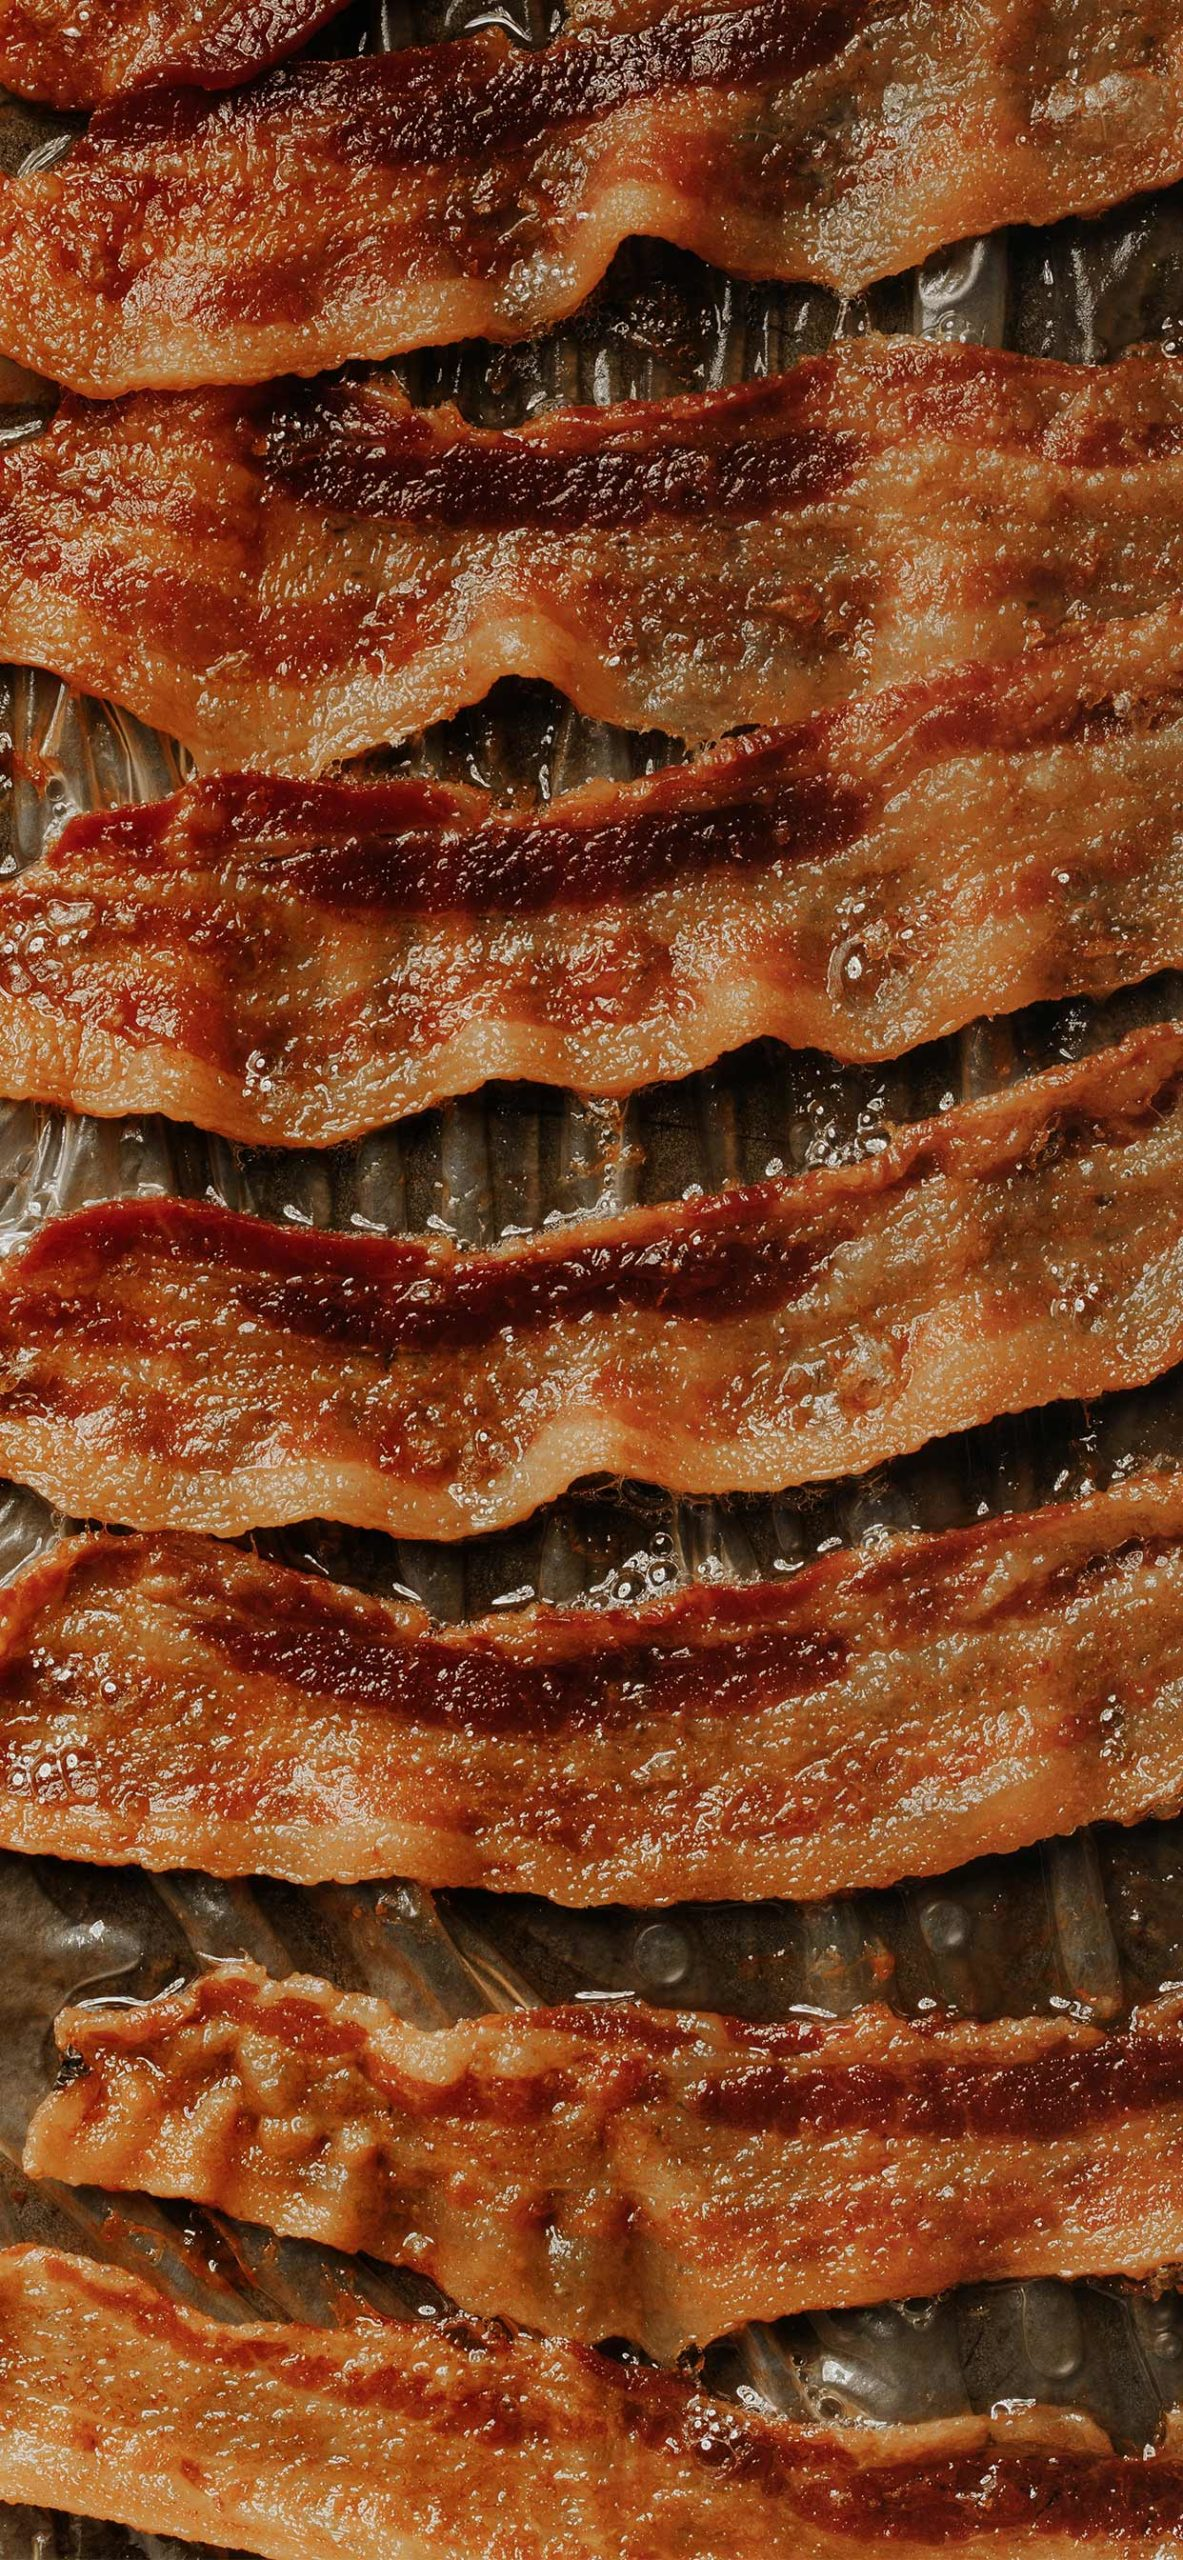 iphone wallpapers bacon2 scaled Bacon